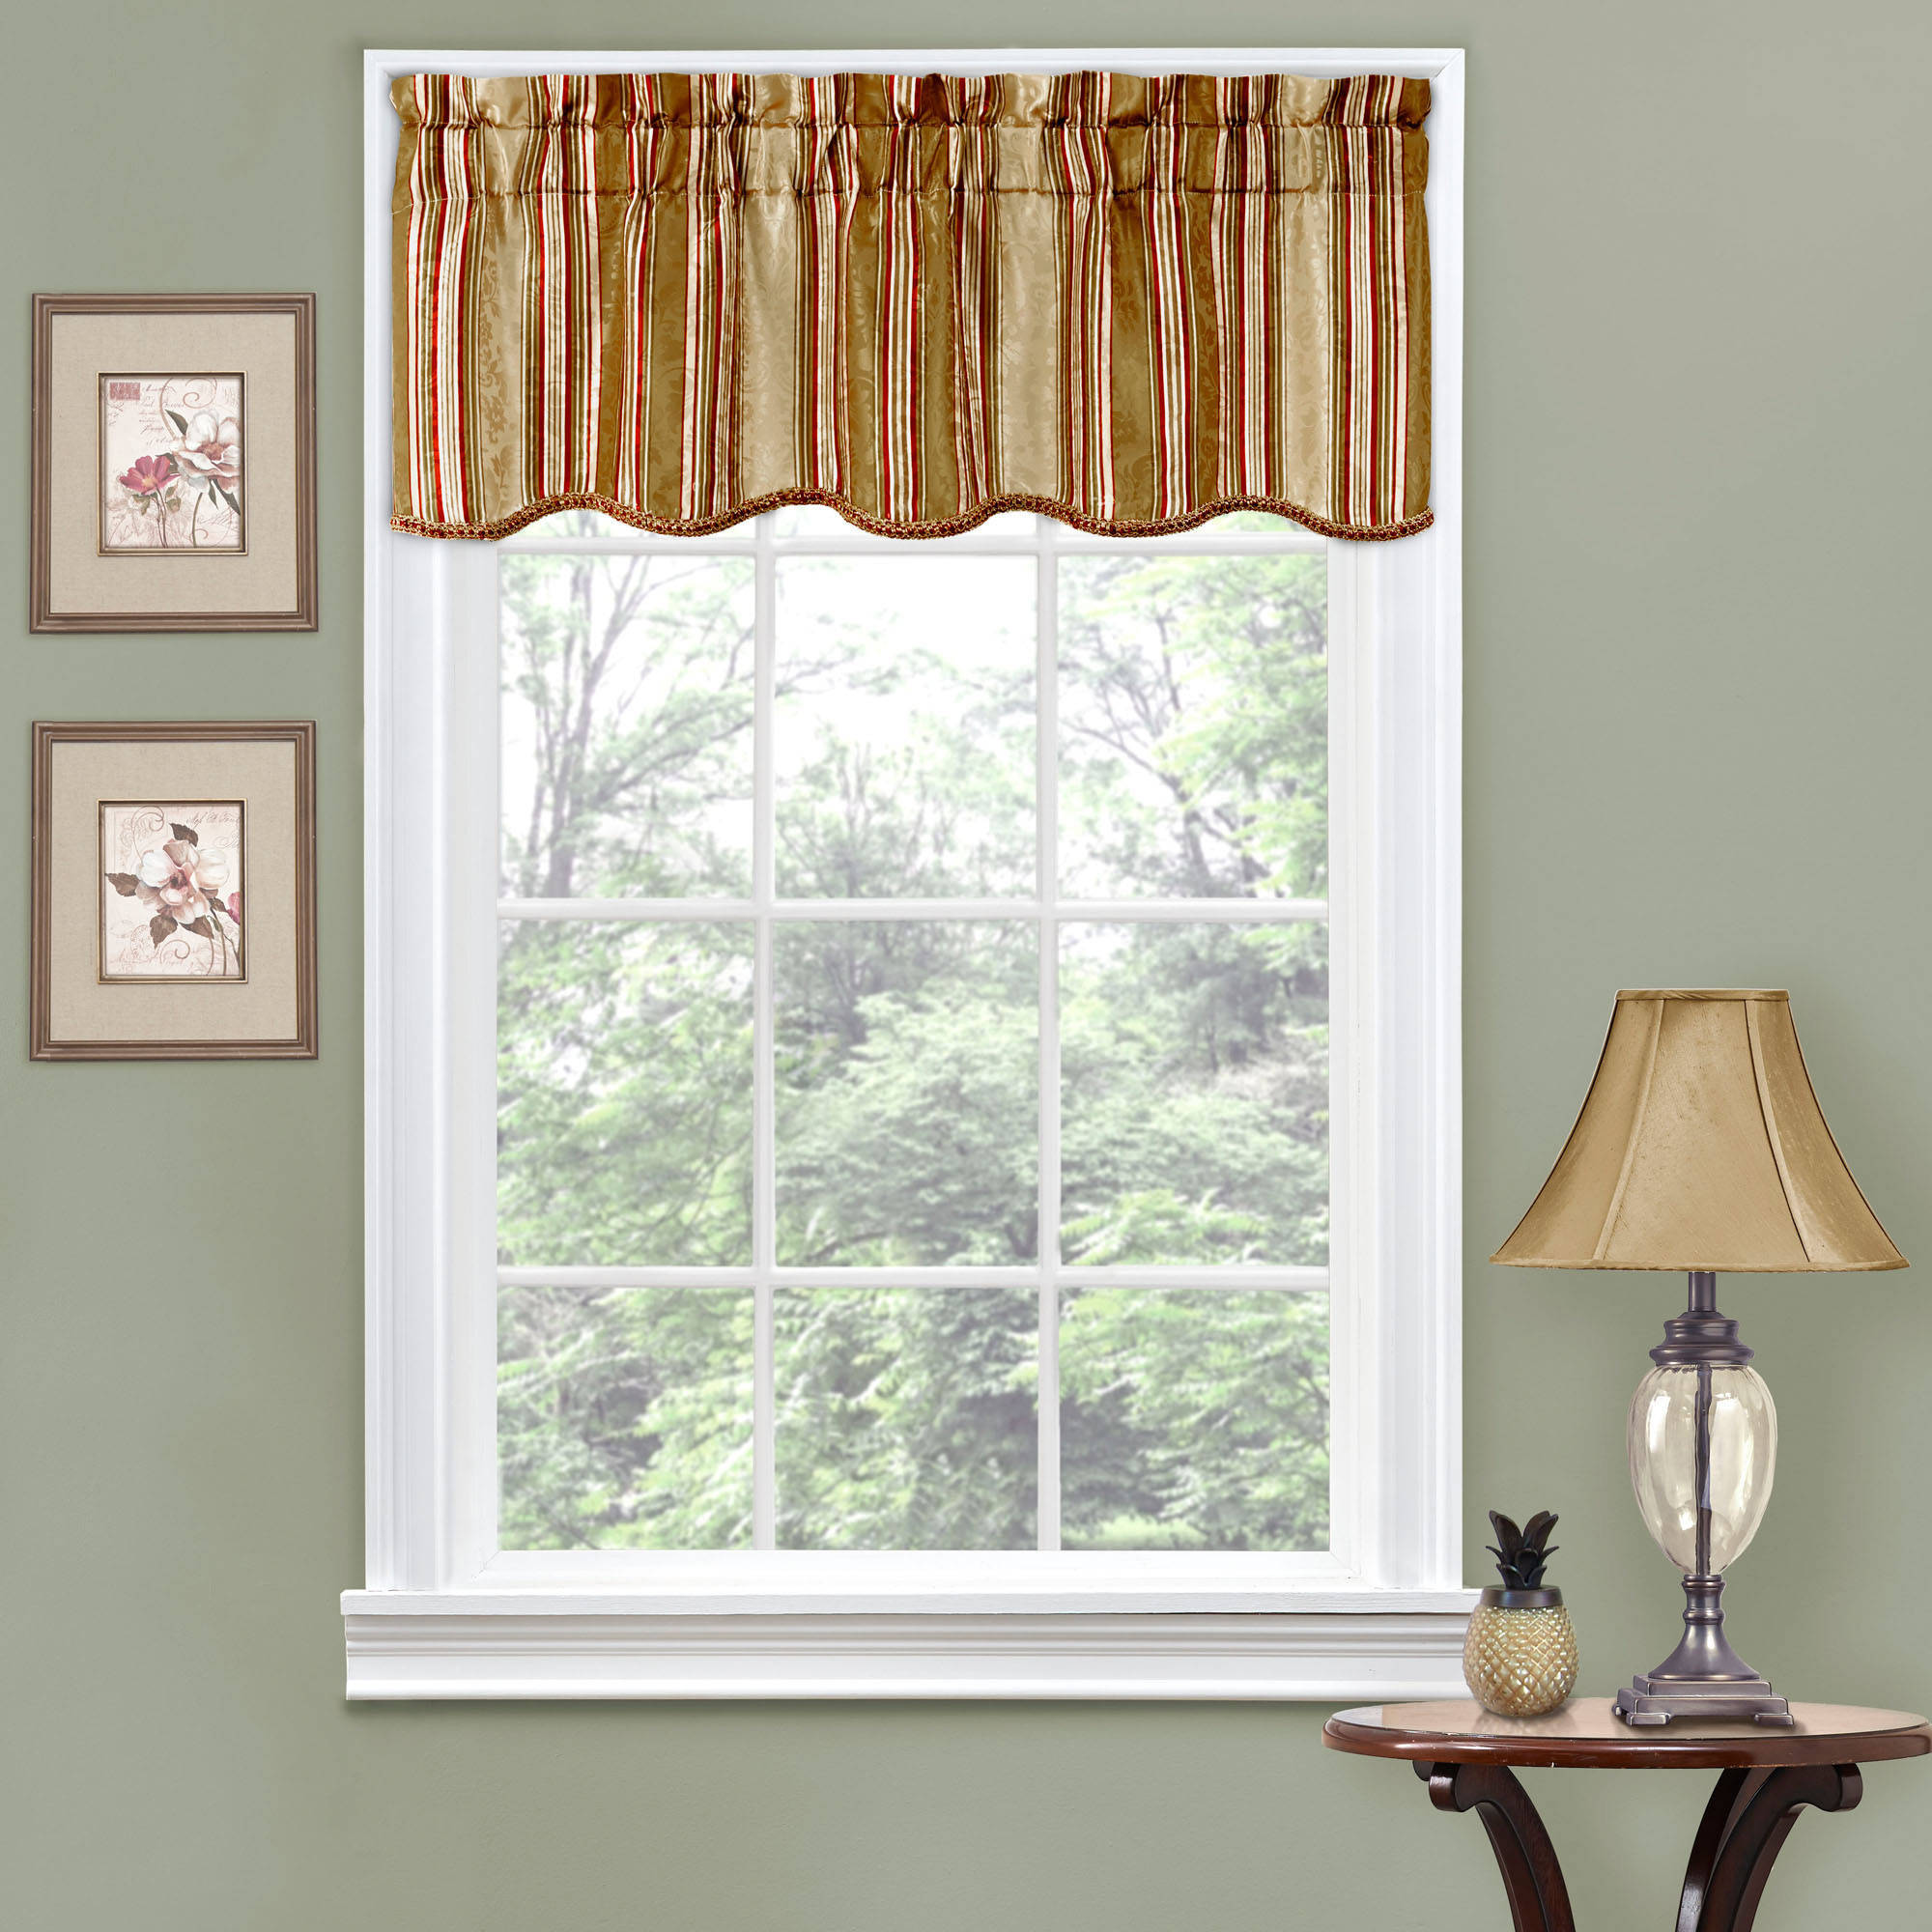 Window valances for treating Windows perfectly